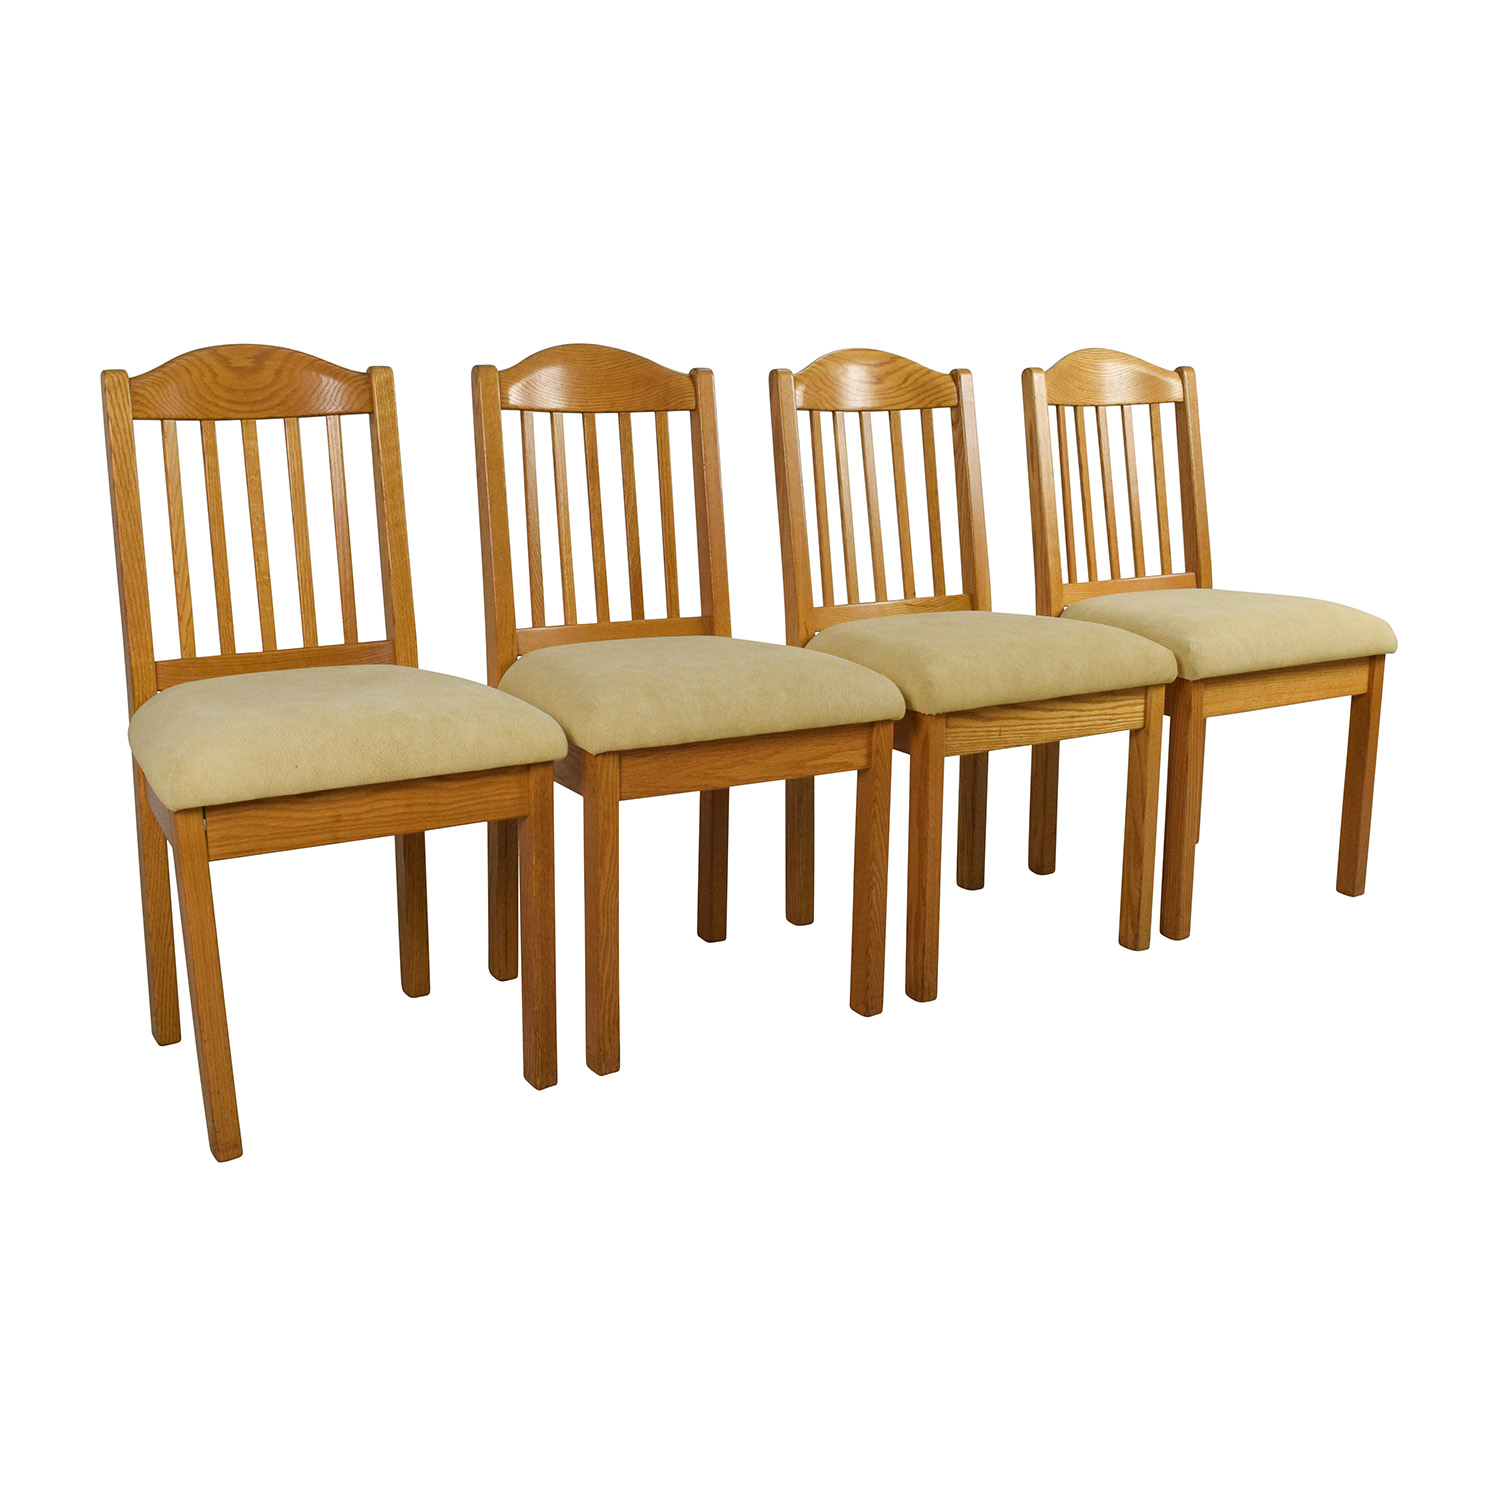 Off set of wood dining chairs